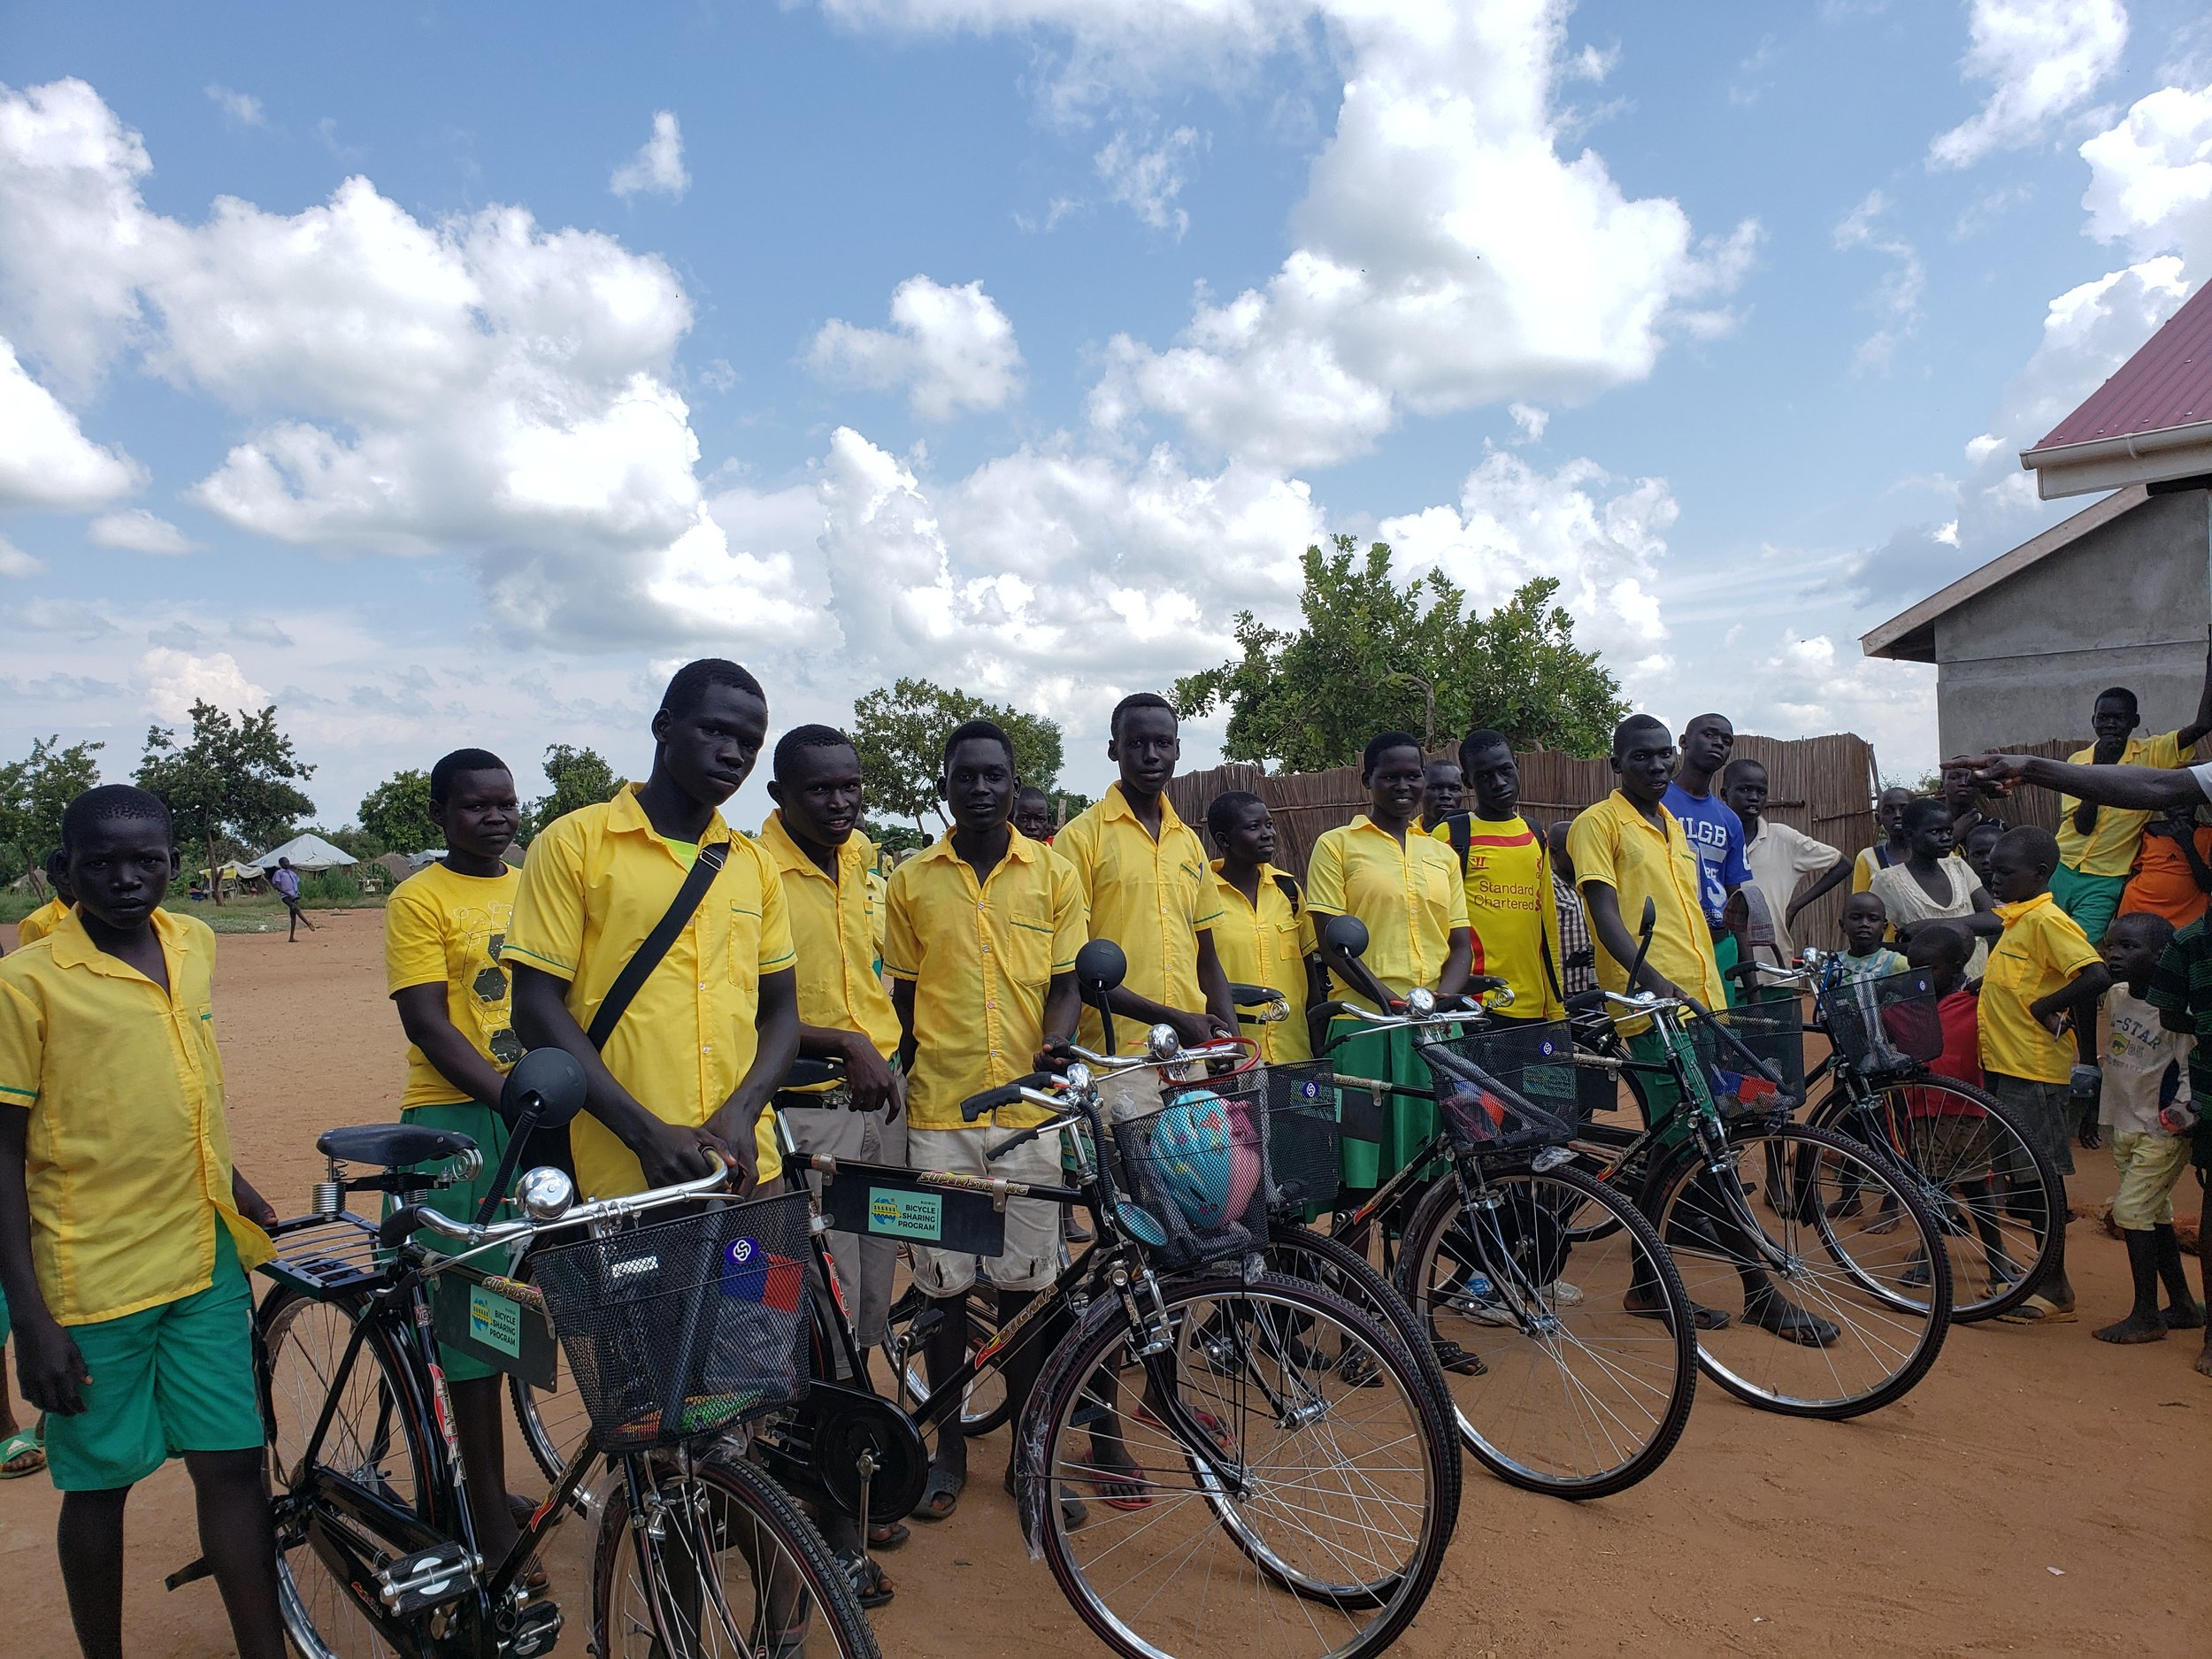 Twajiji Primary School students selected to participate in the TWSB Bike Share Program, selected based on distance from school, attendance, and academic performance.,